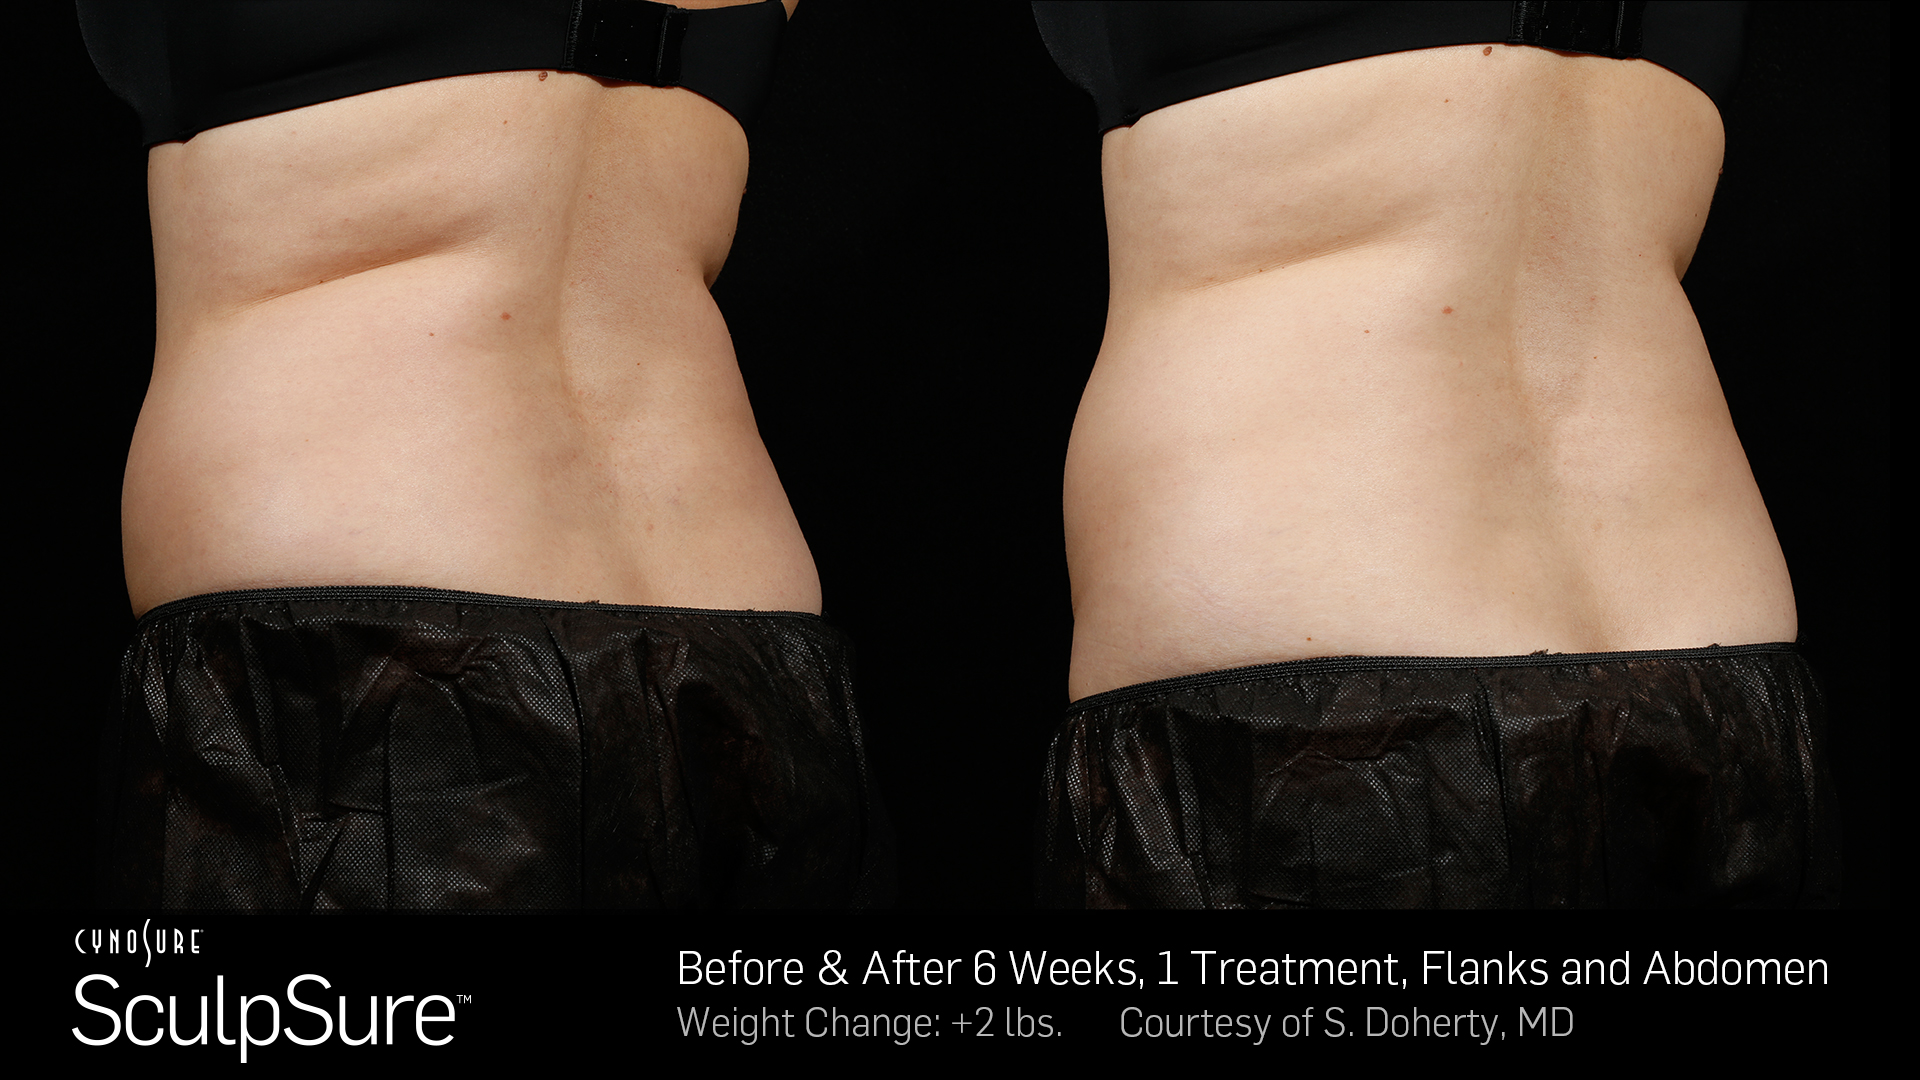 BA-SculpSure-SBS-Doherty-1TX-6Wks-3